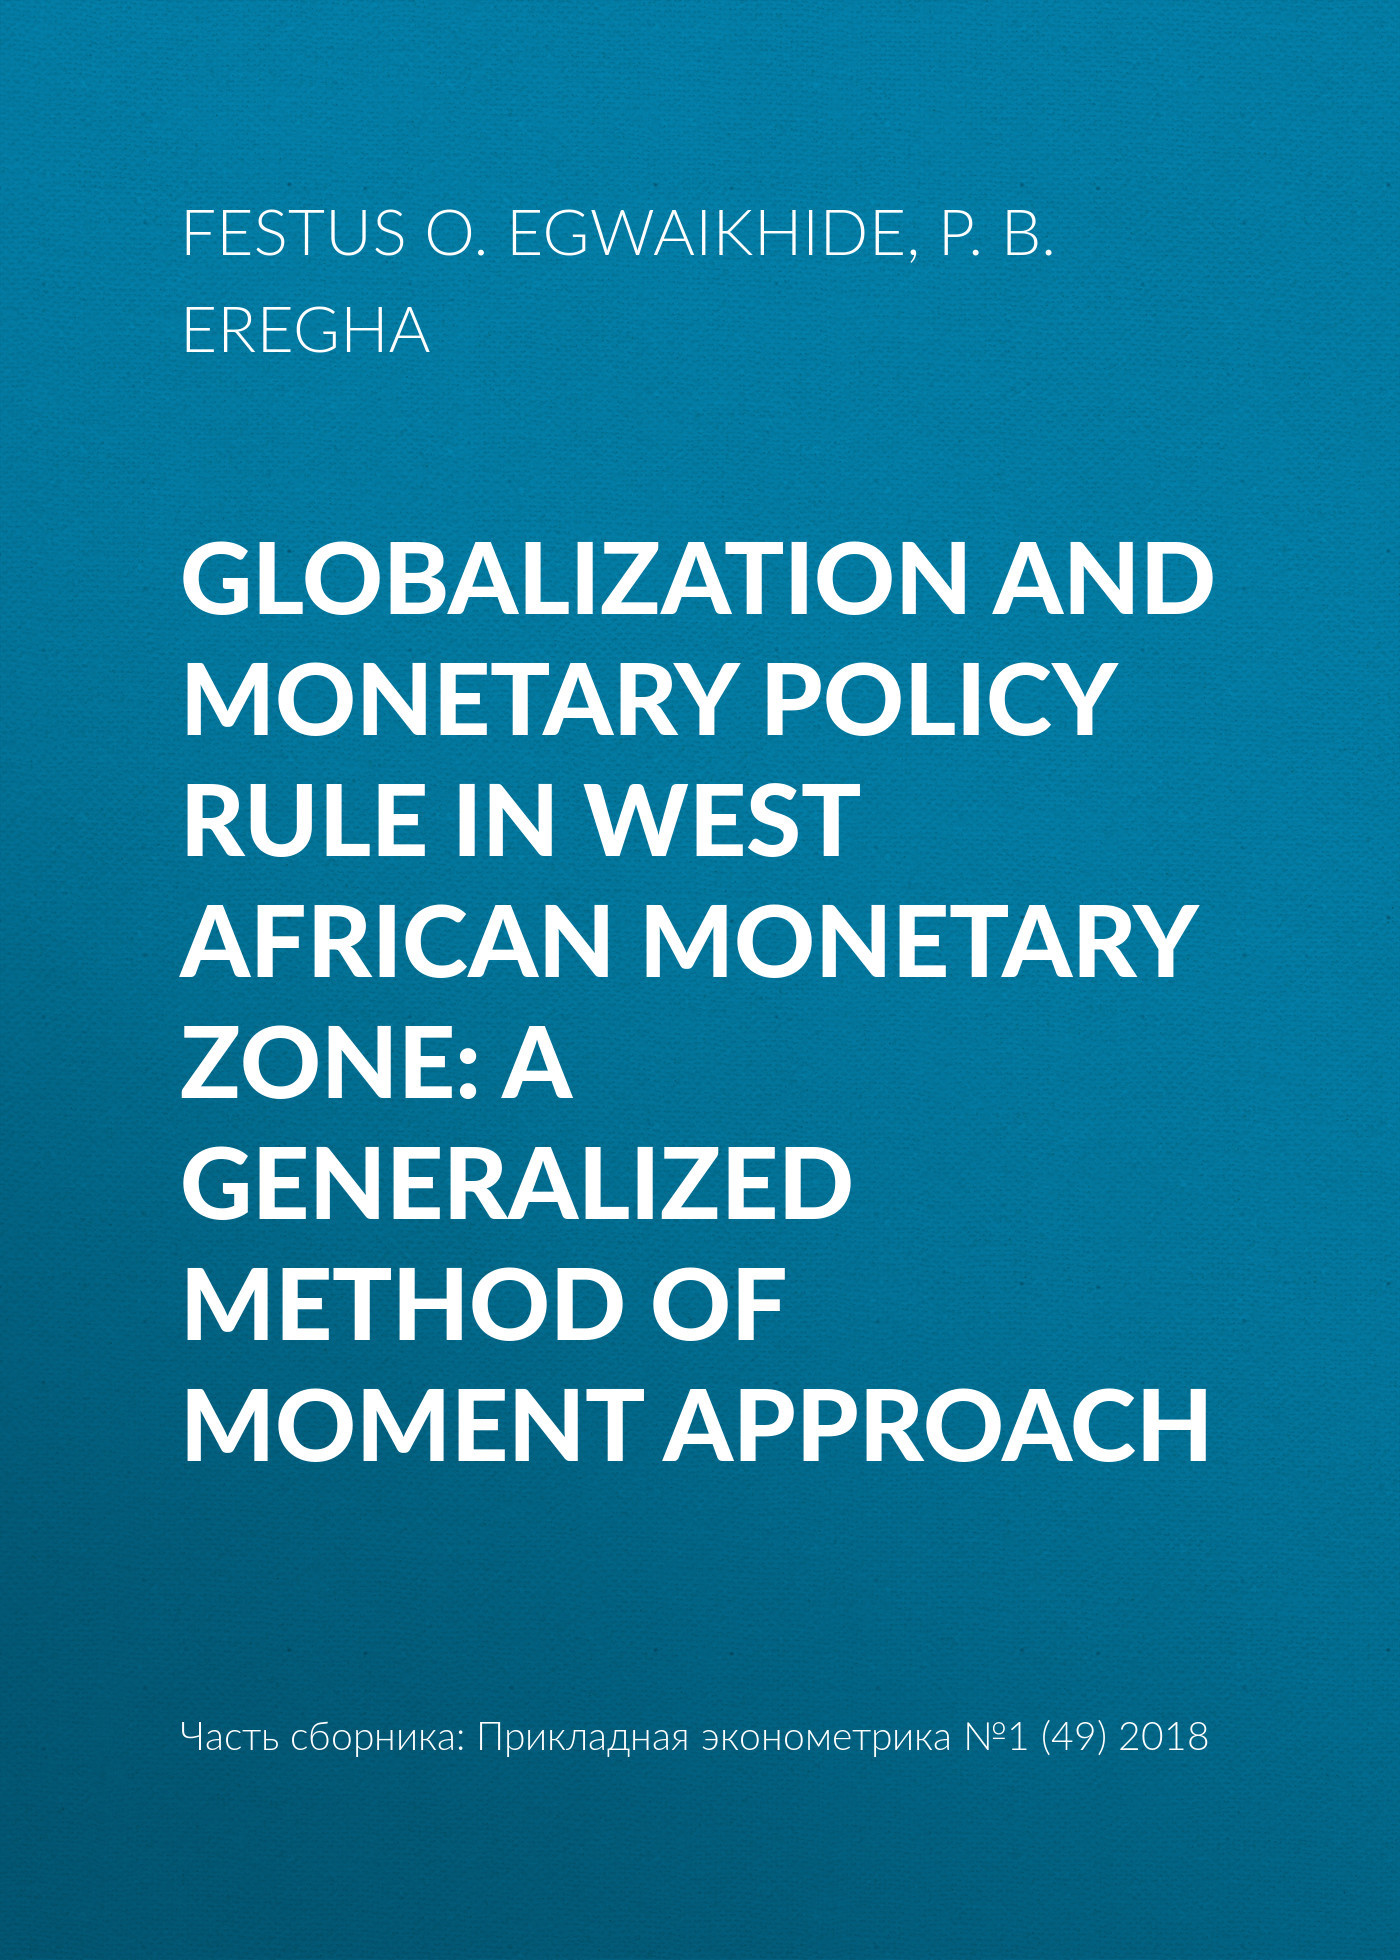 Festus O. Egwaikhide Globalization and monetary policy rule in West African Monetary Zone: A generalized method of moment approach bertsch power and policy in communist systems paper only